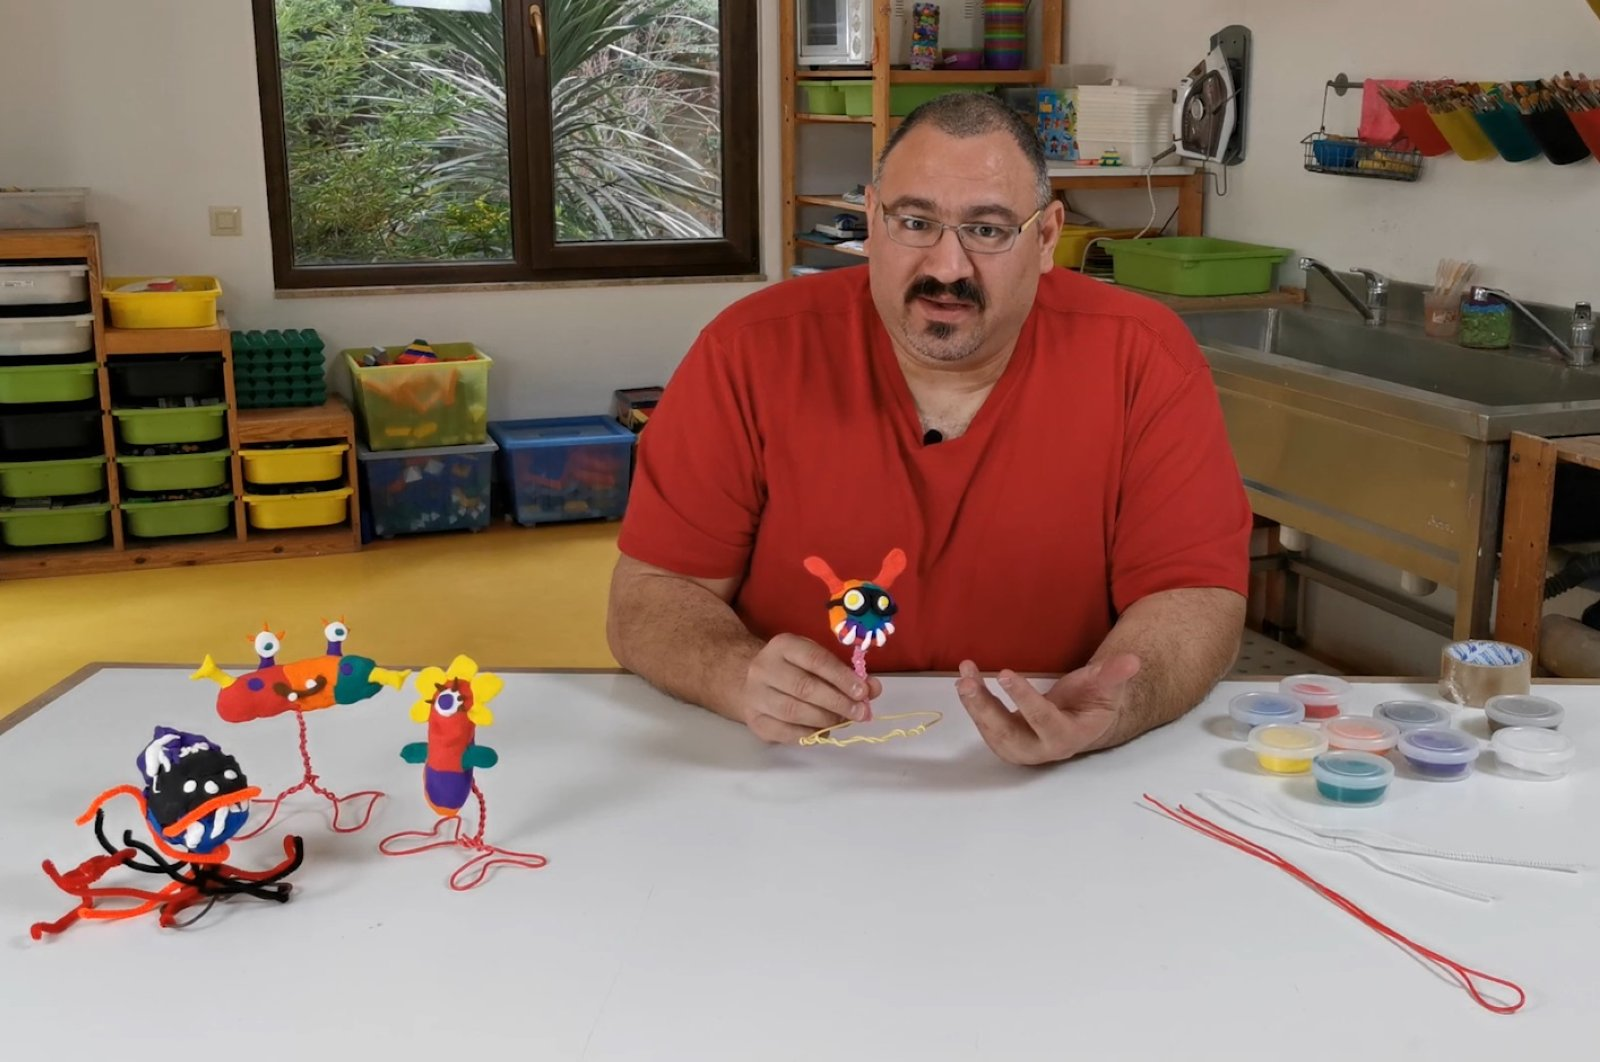 """""""Toy Sculpture Activity"""" is one of the workshops which children can attend with materials at home on Akbank Sanat's YouTube channel. (Still image from Akbank Sanat YouTube channel)"""